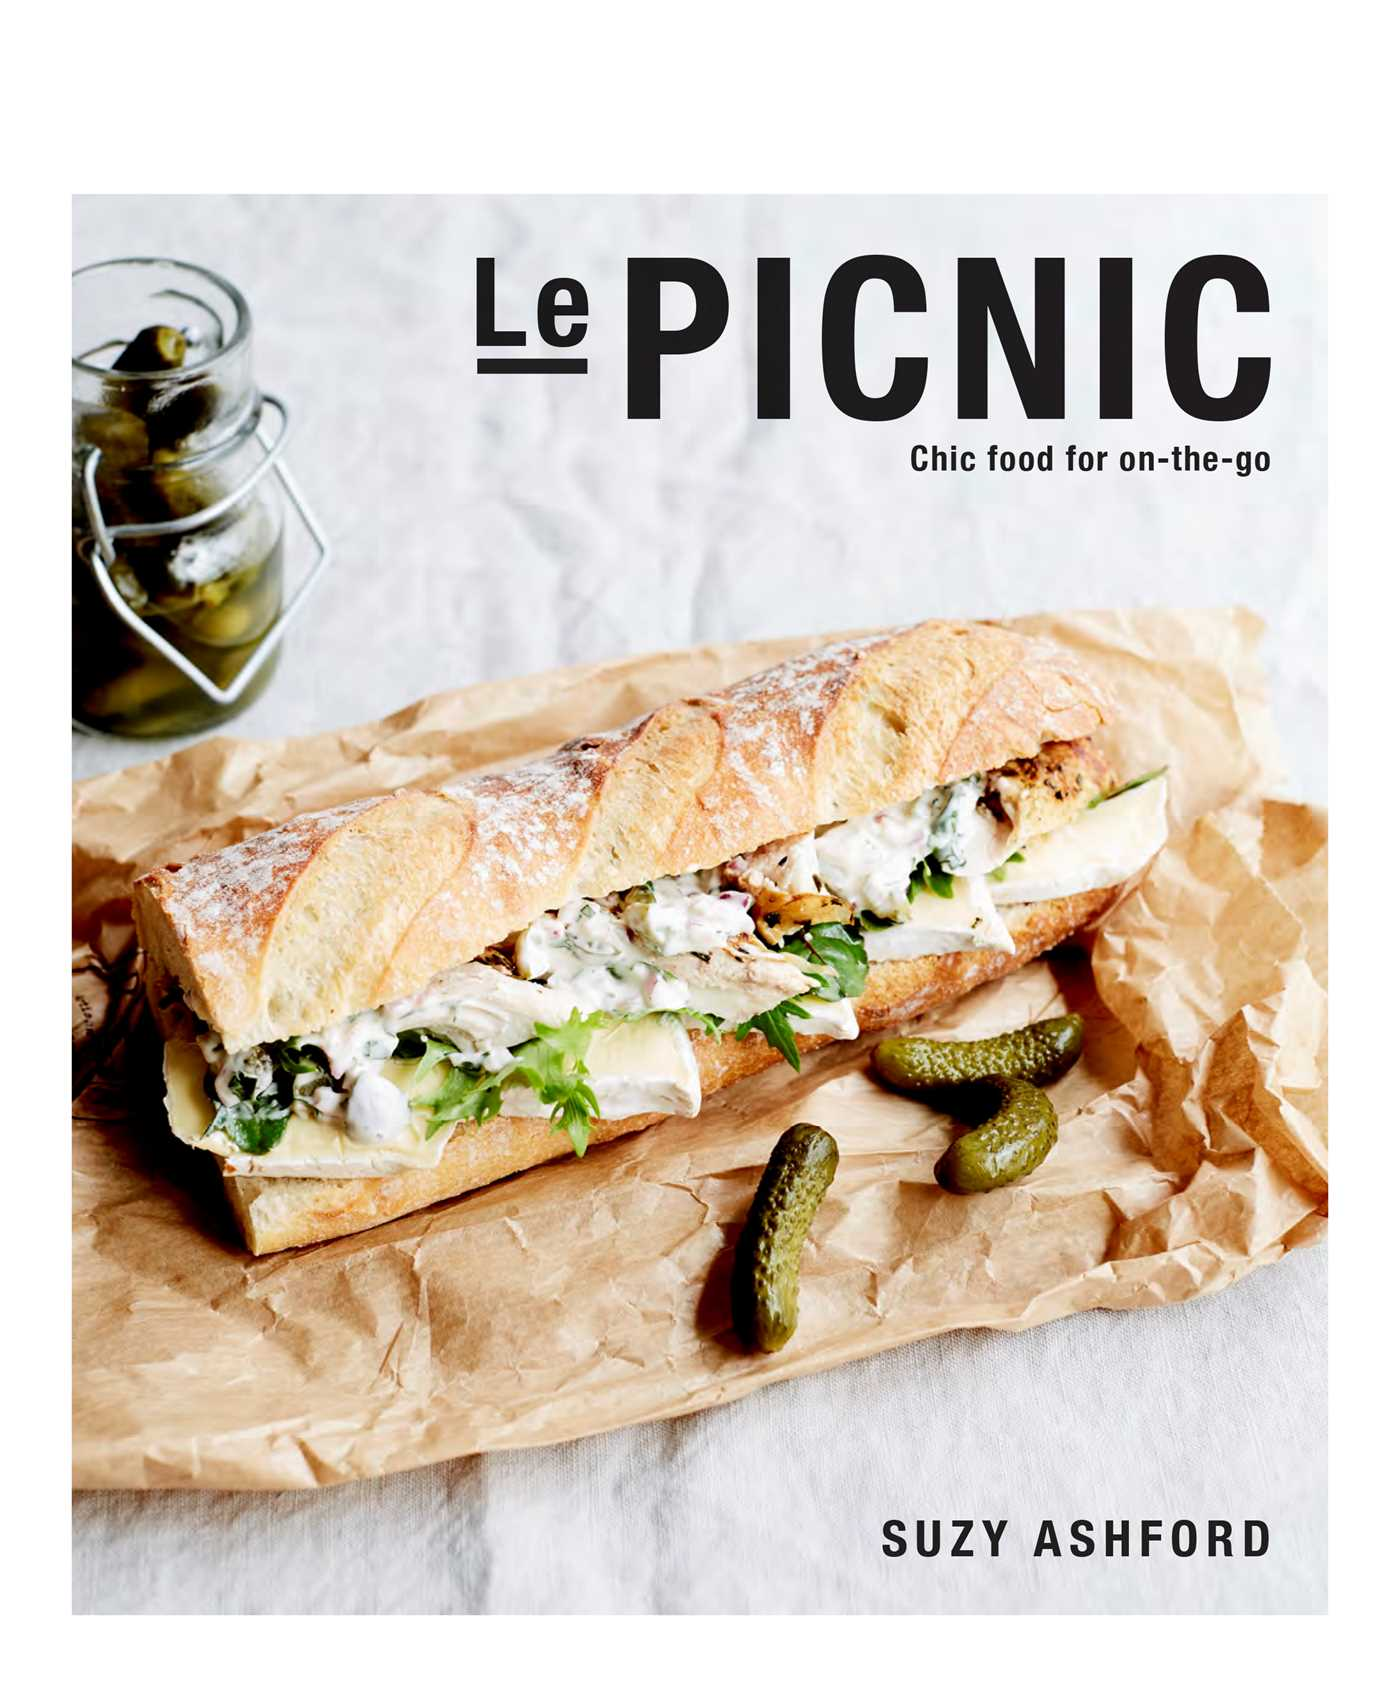 Le picnic chic food for on the go 9781925418293 hr